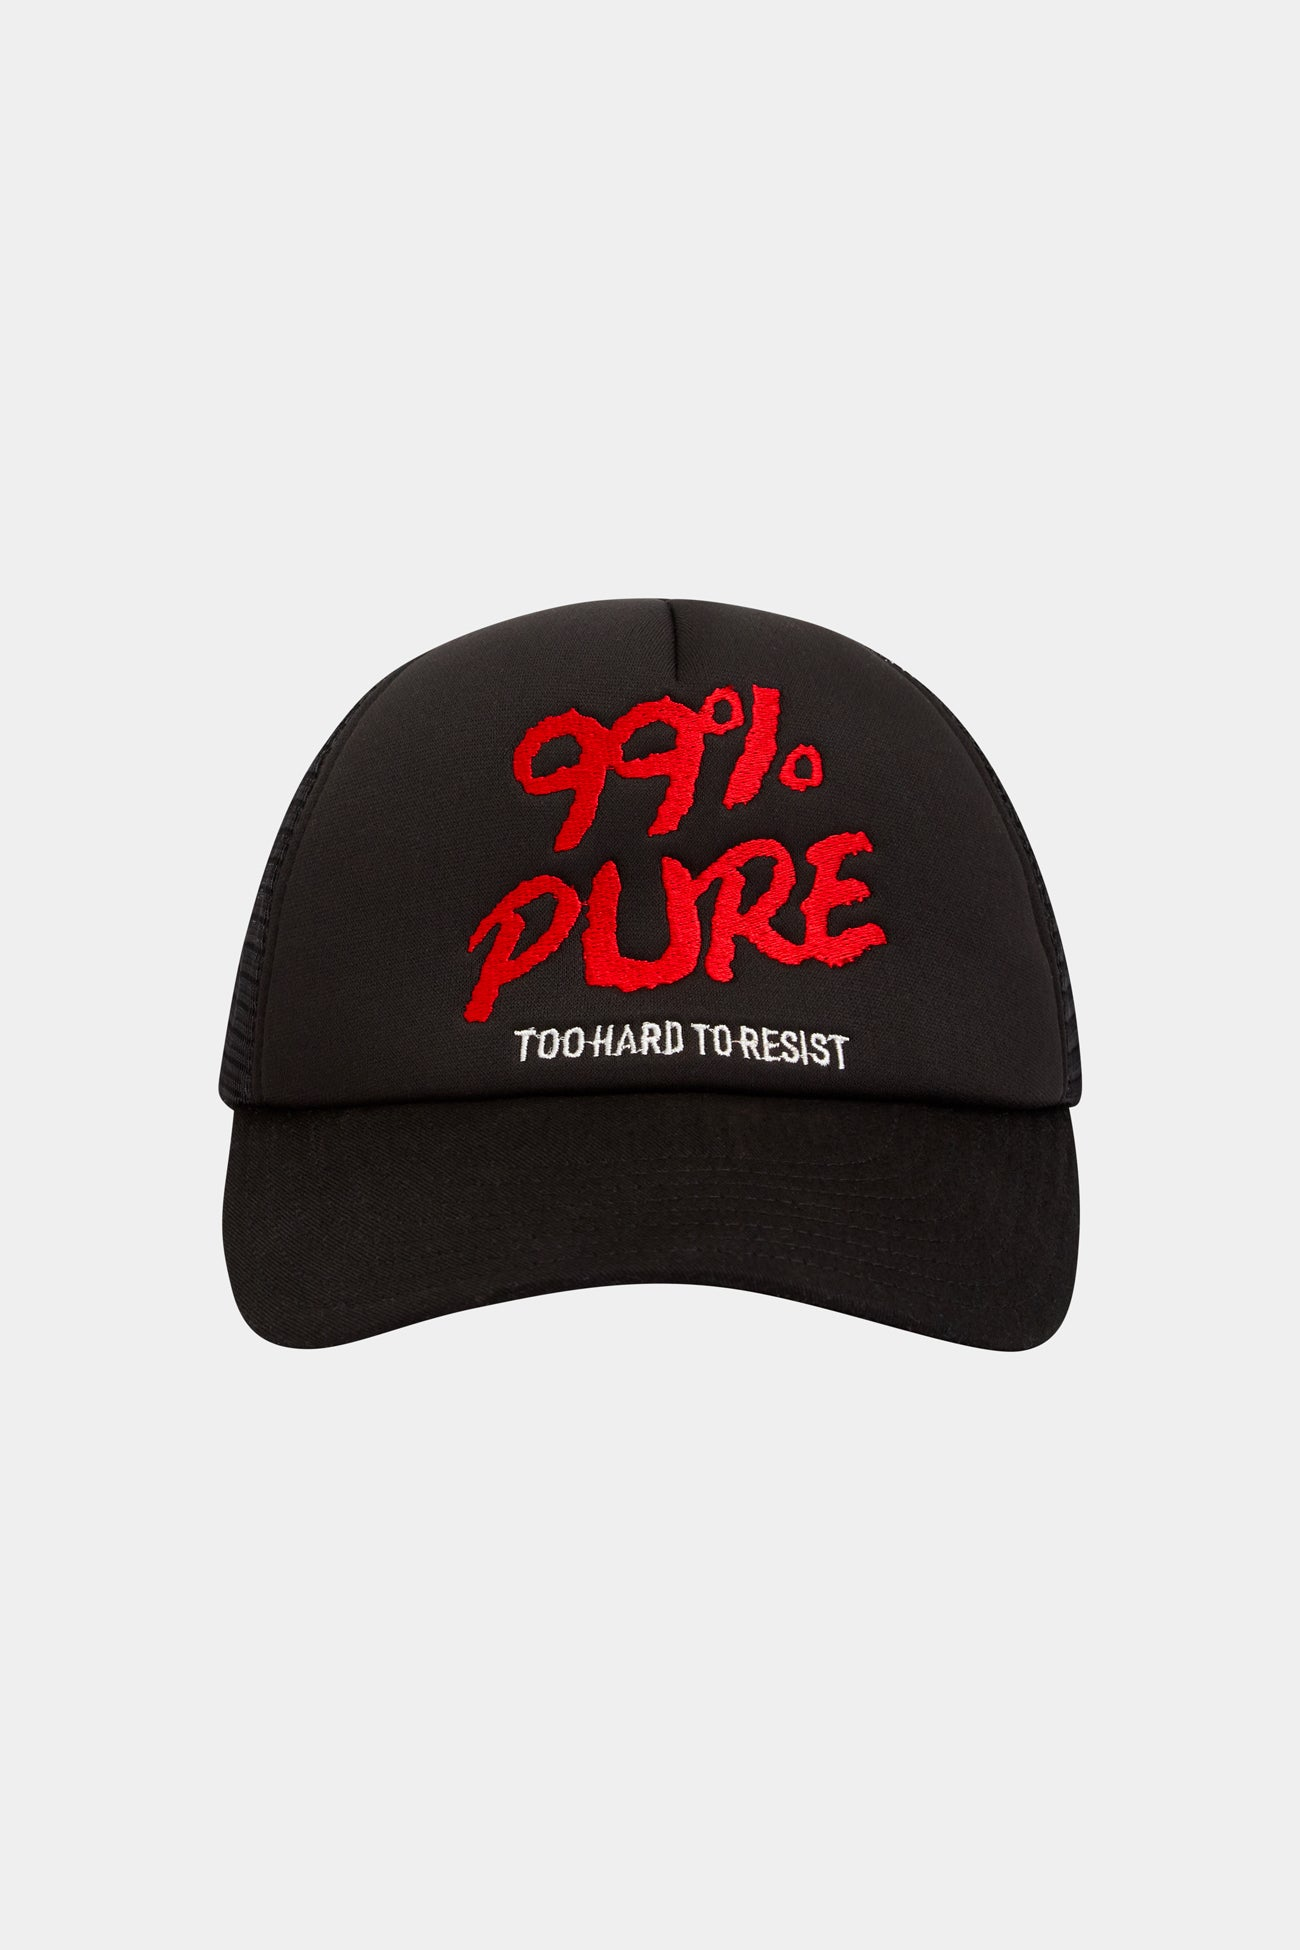 99% PURE TRUCKER HAT